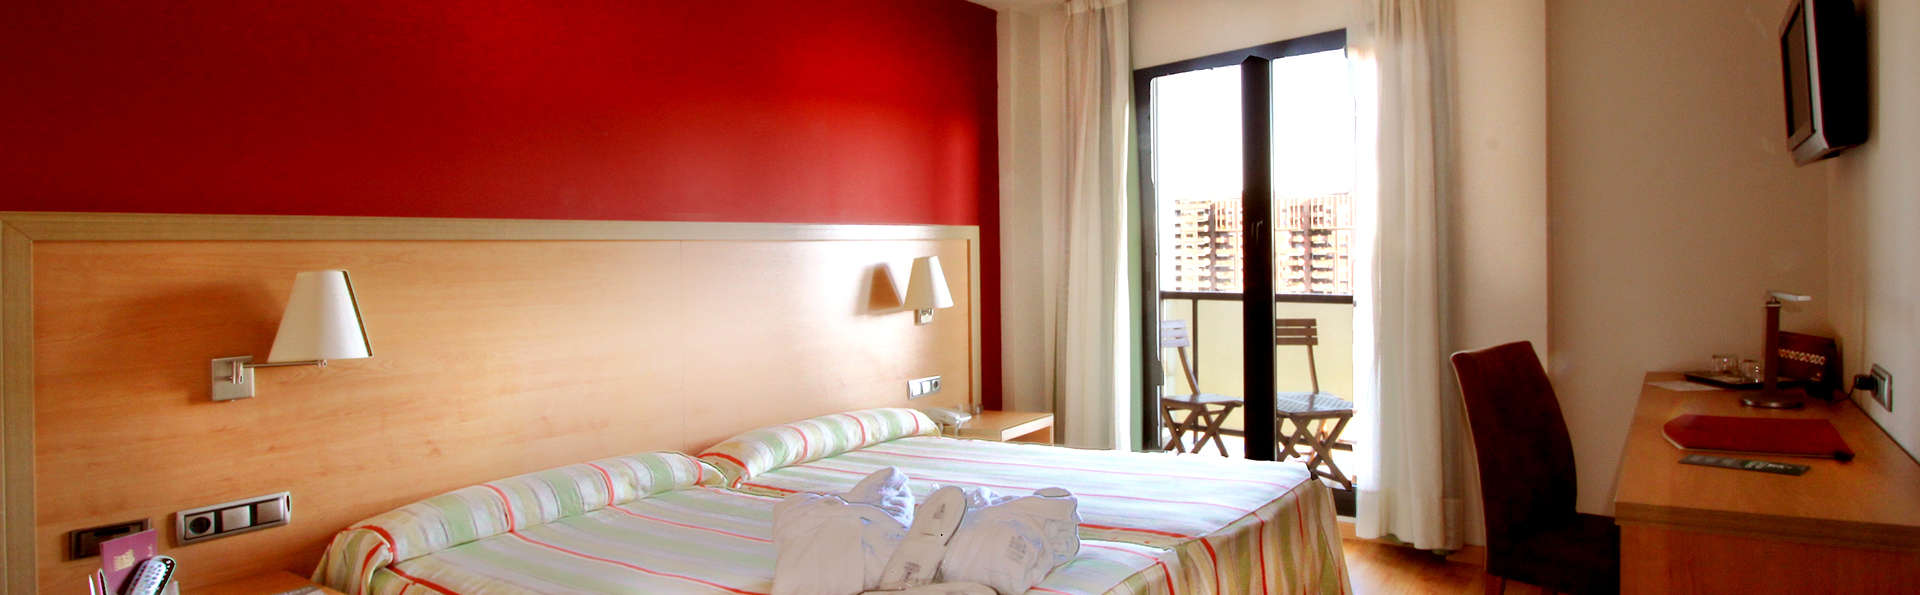 Hotel Real Lleida - Edit_Room7.jpg